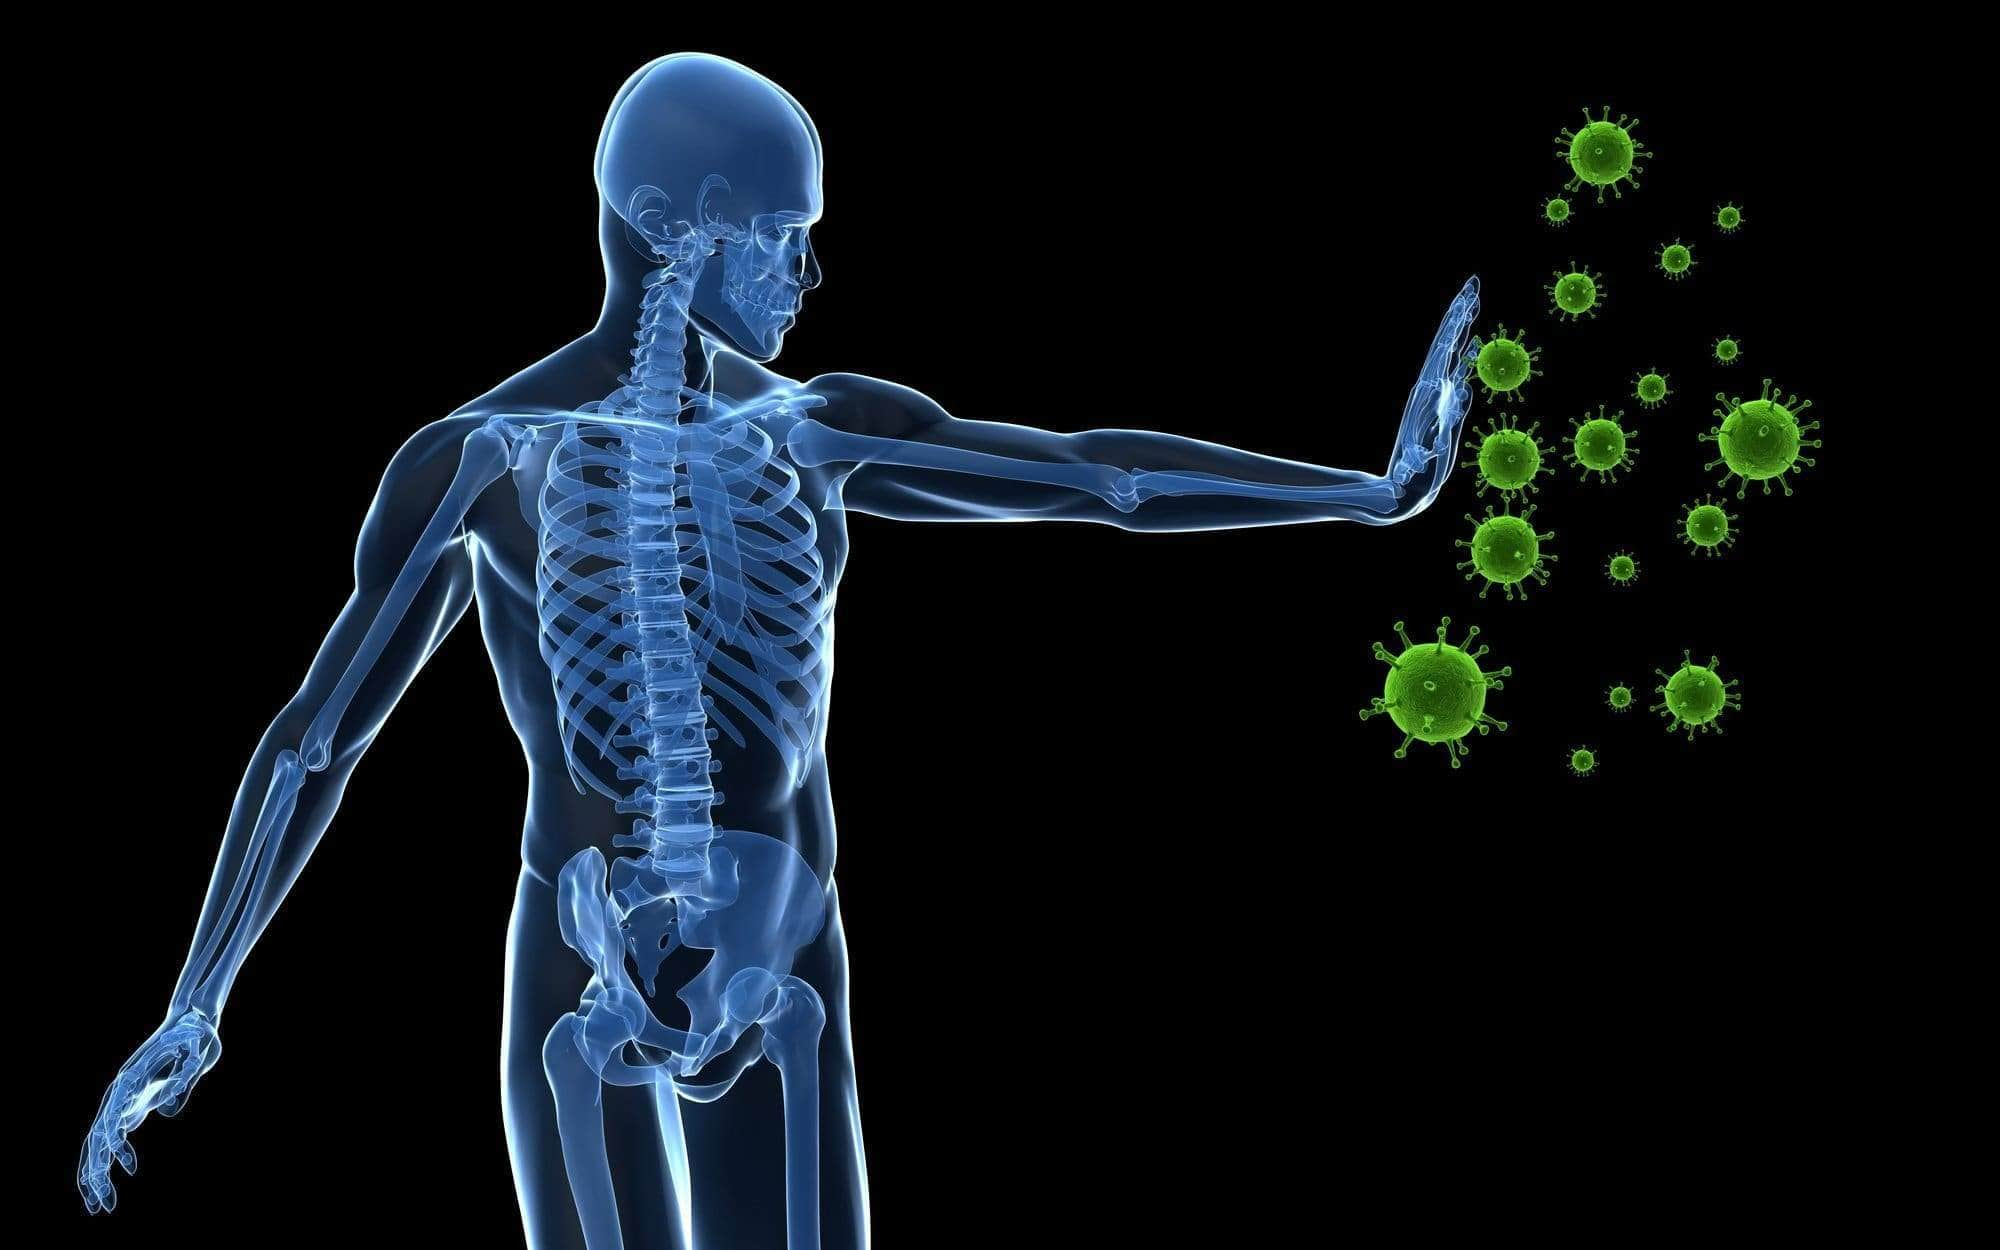 How CBD can help improve the immune system